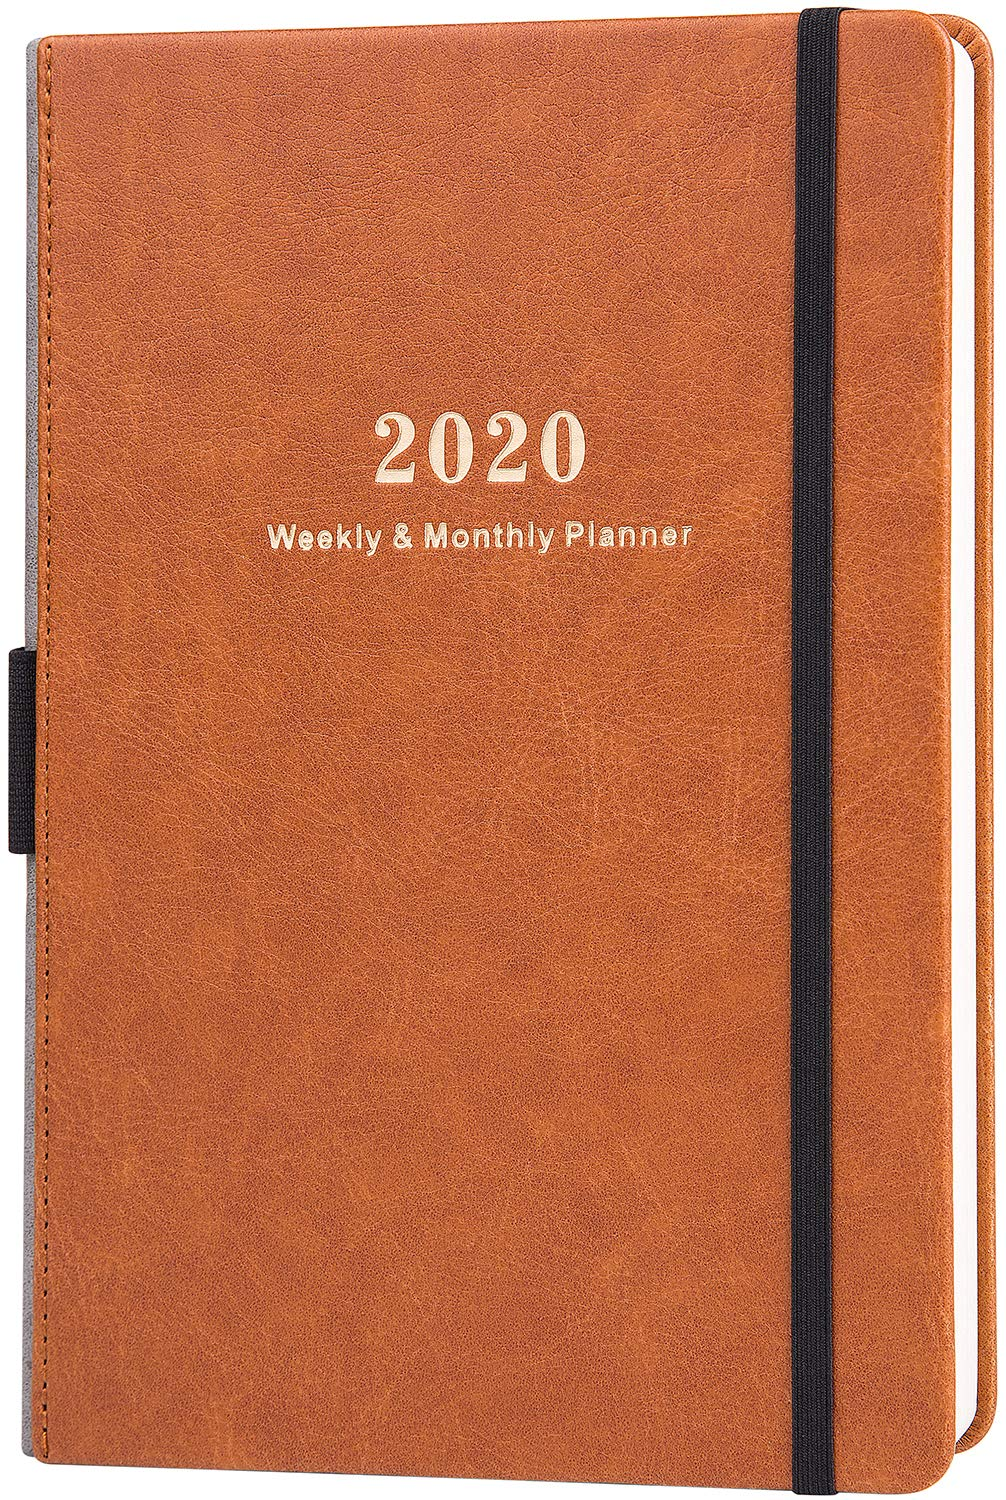 2020 Planner - Weekly & Monthly Planner with Calendar Stickers, A5 Premium Thicker Paper with Pen Holder, Inner Pocket and 88 Notes Pages by Lemome